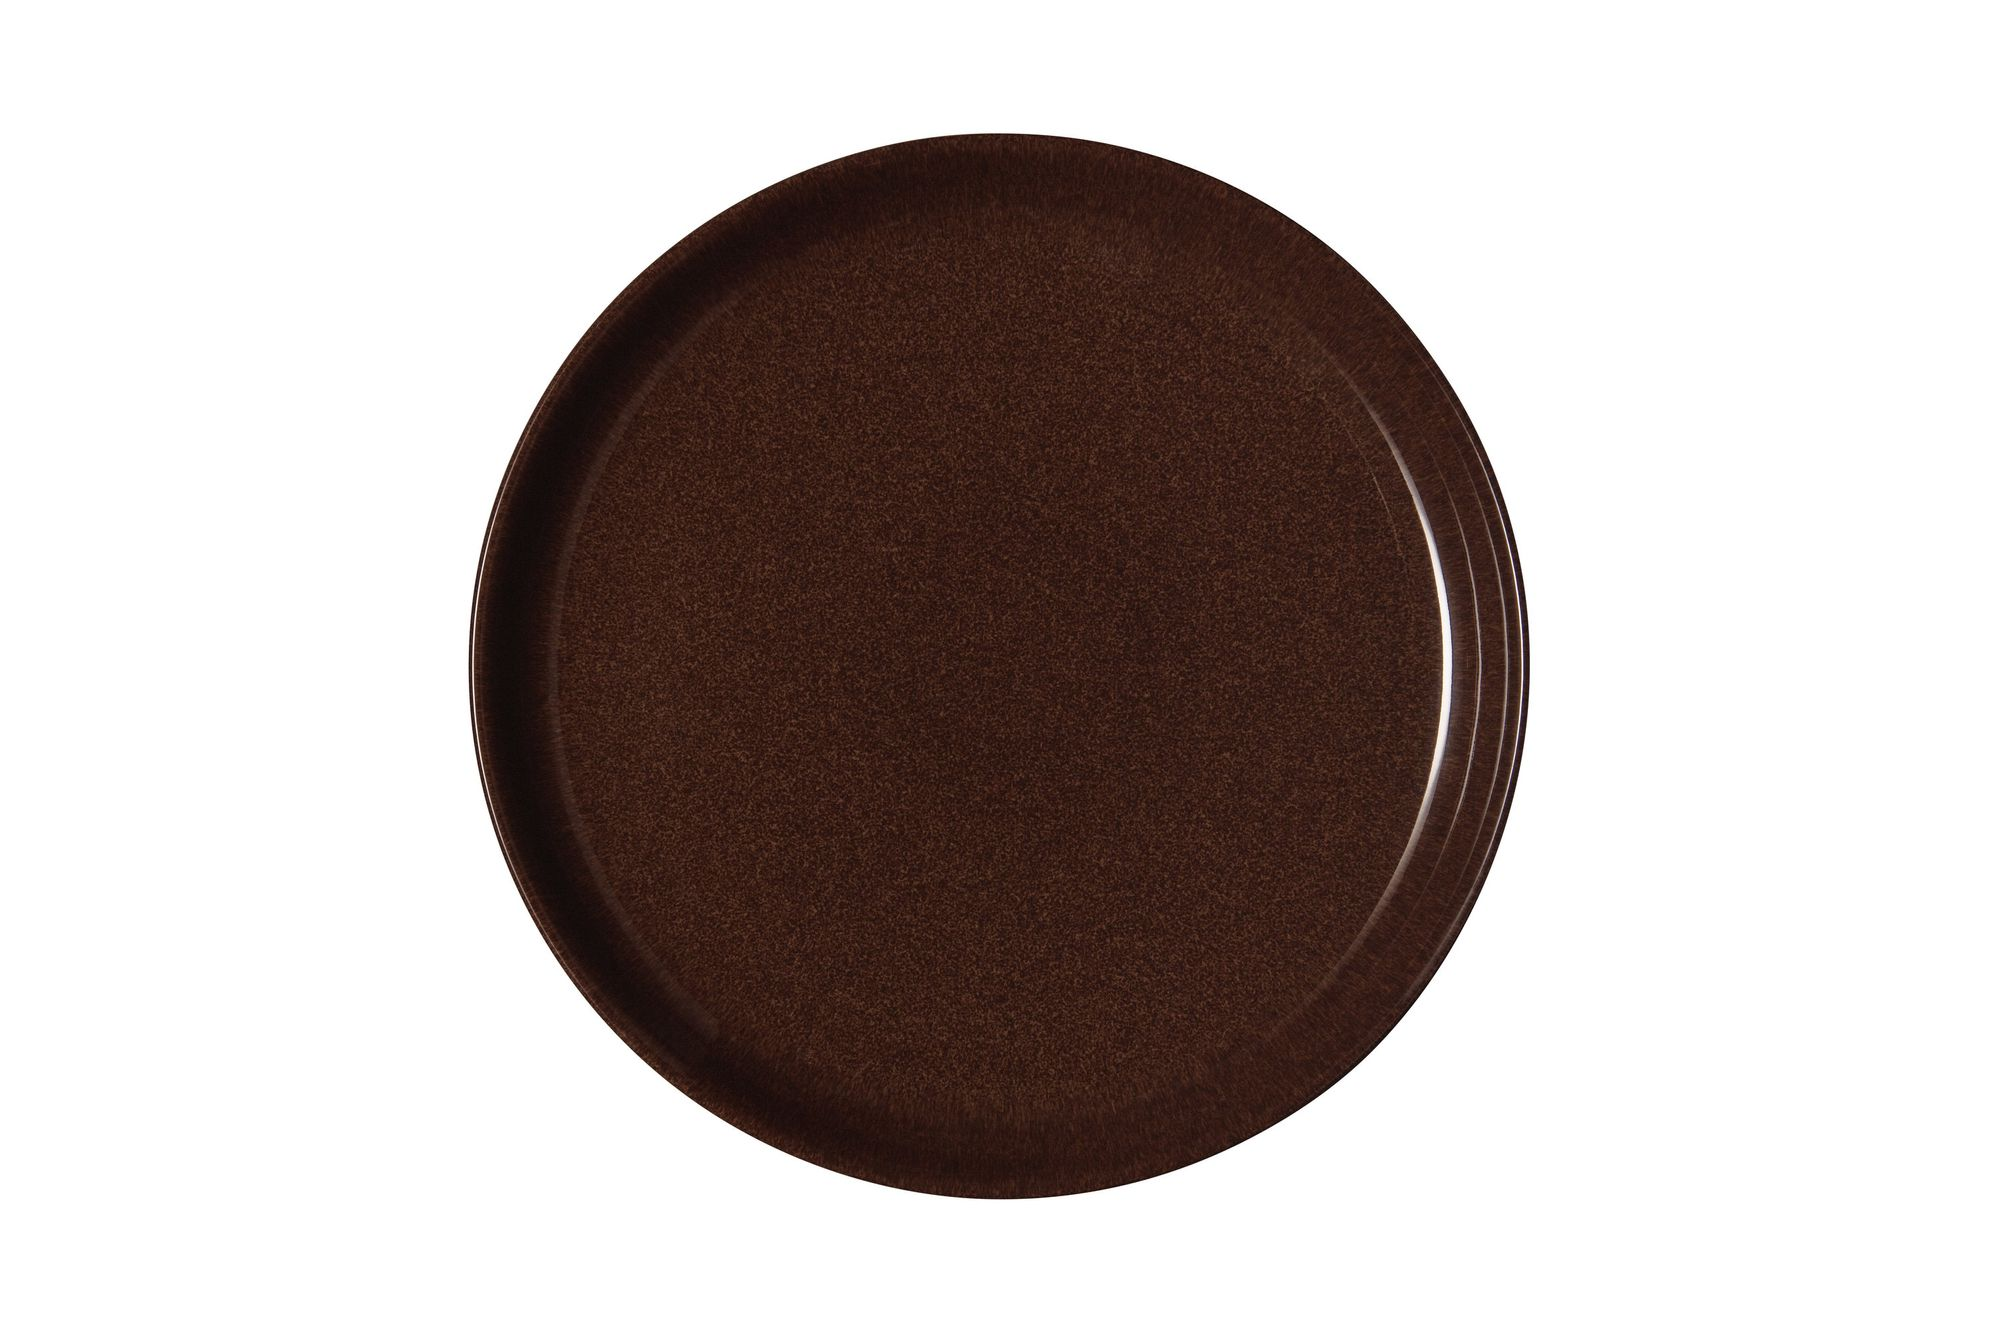 Denby Studio Craft Dinner Plate Walnut - Coupe 26cm thumb 1